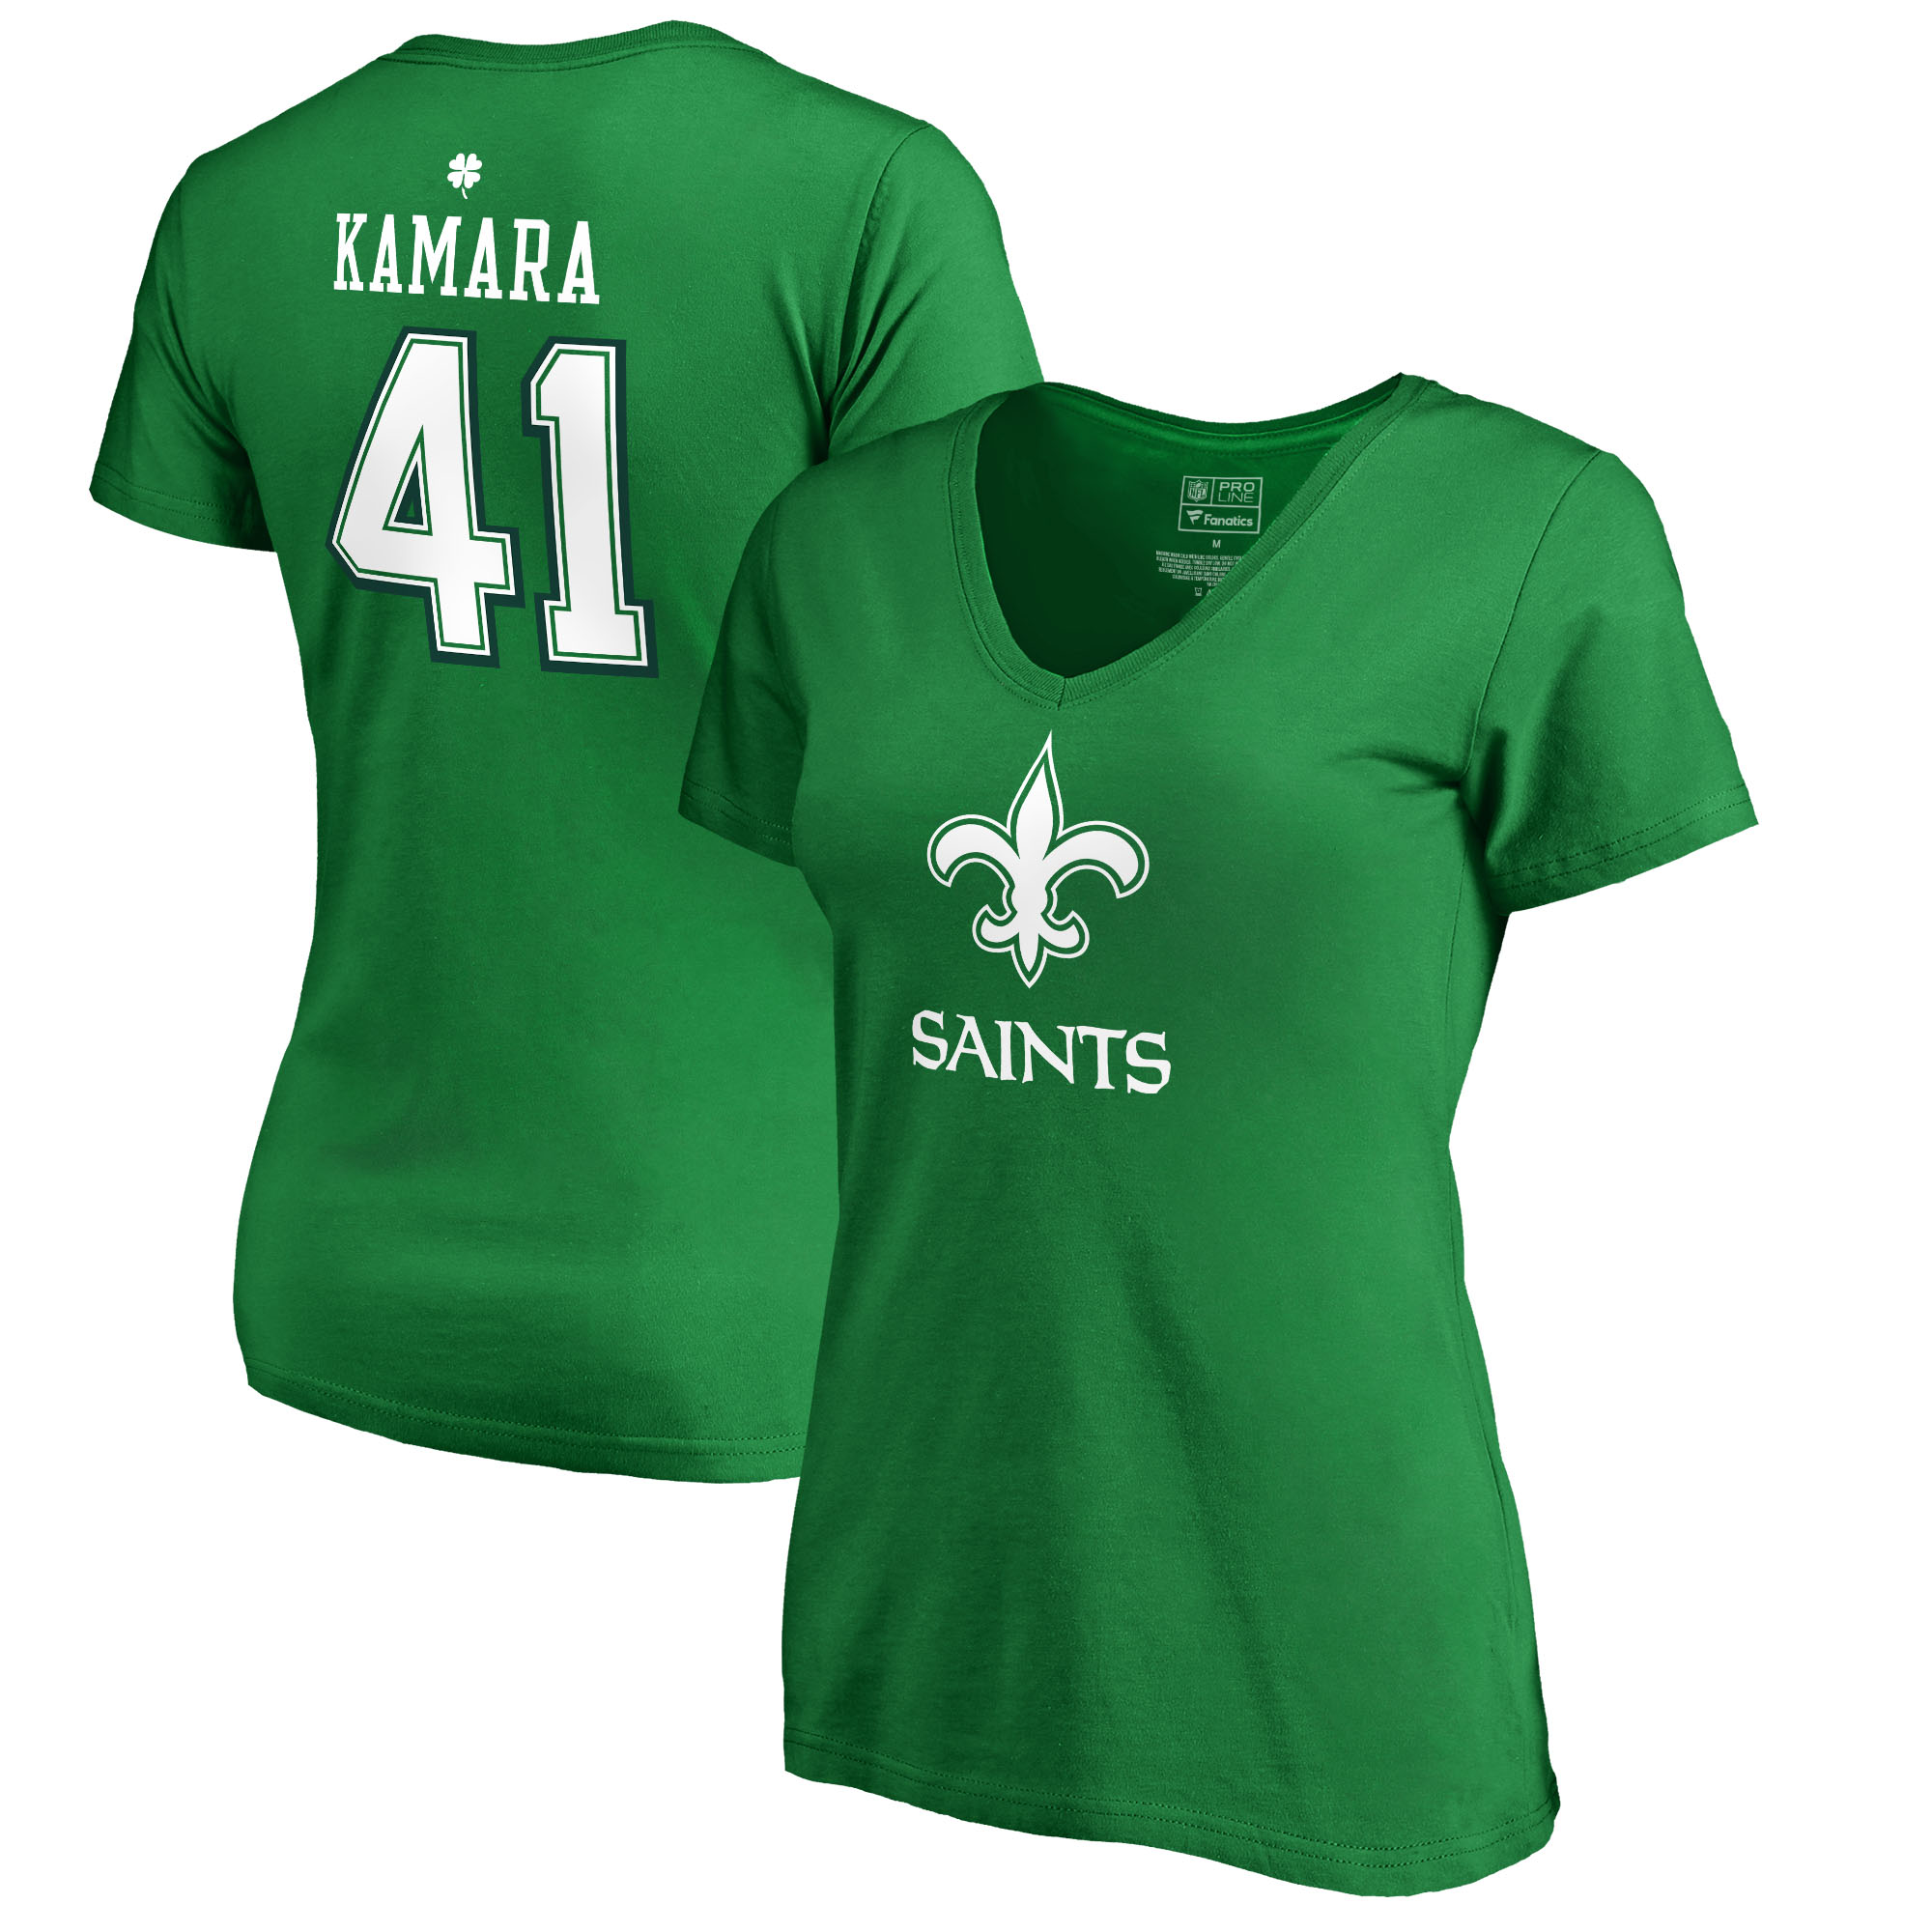 Alvin Kamara New Orleans Saints NFL Pro Line by Fanatics Branded Women's St. Patrick's Day Icon Name & Number V-Neck T-Shirt - Kelly Green